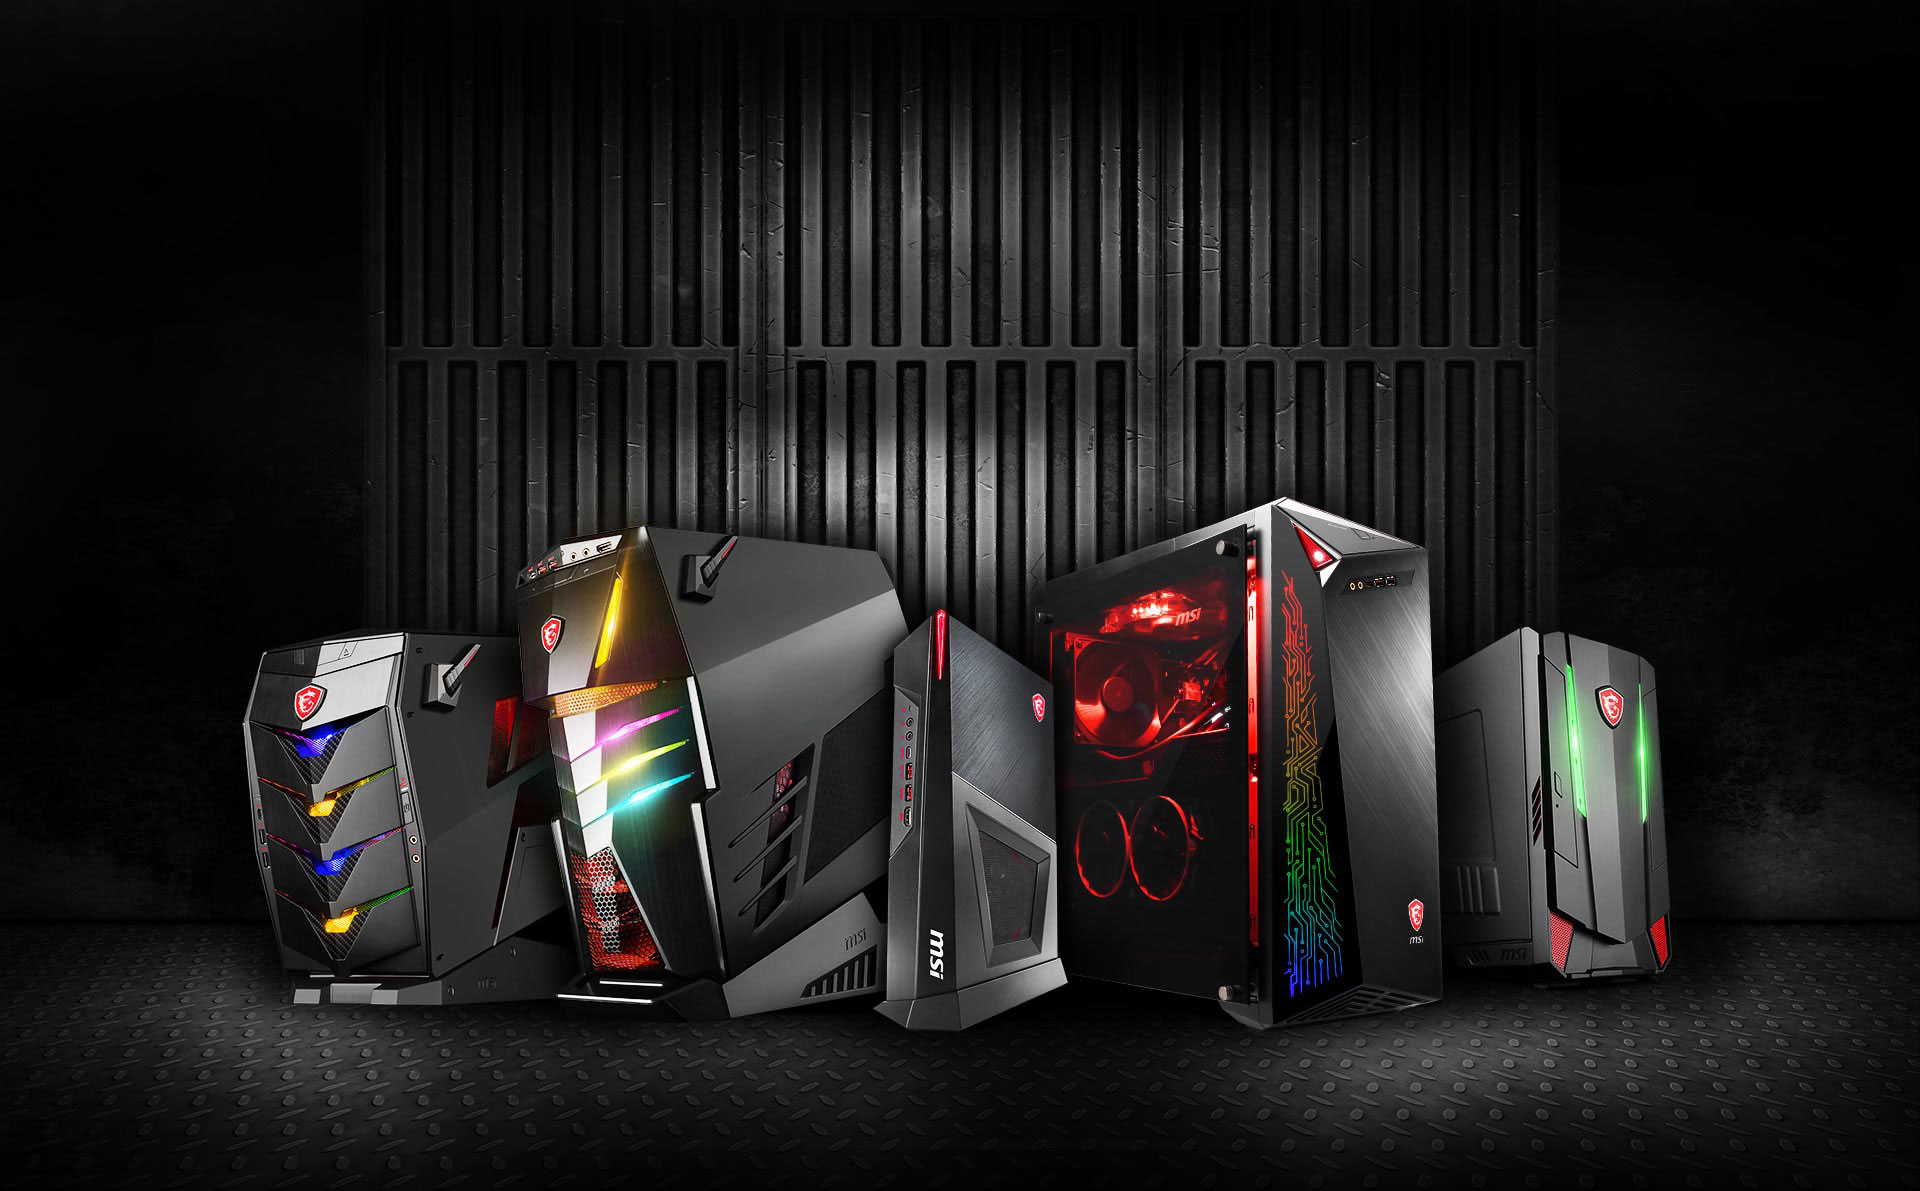 The Best Gaming PC 2019 | Gaming Desktop | MSI